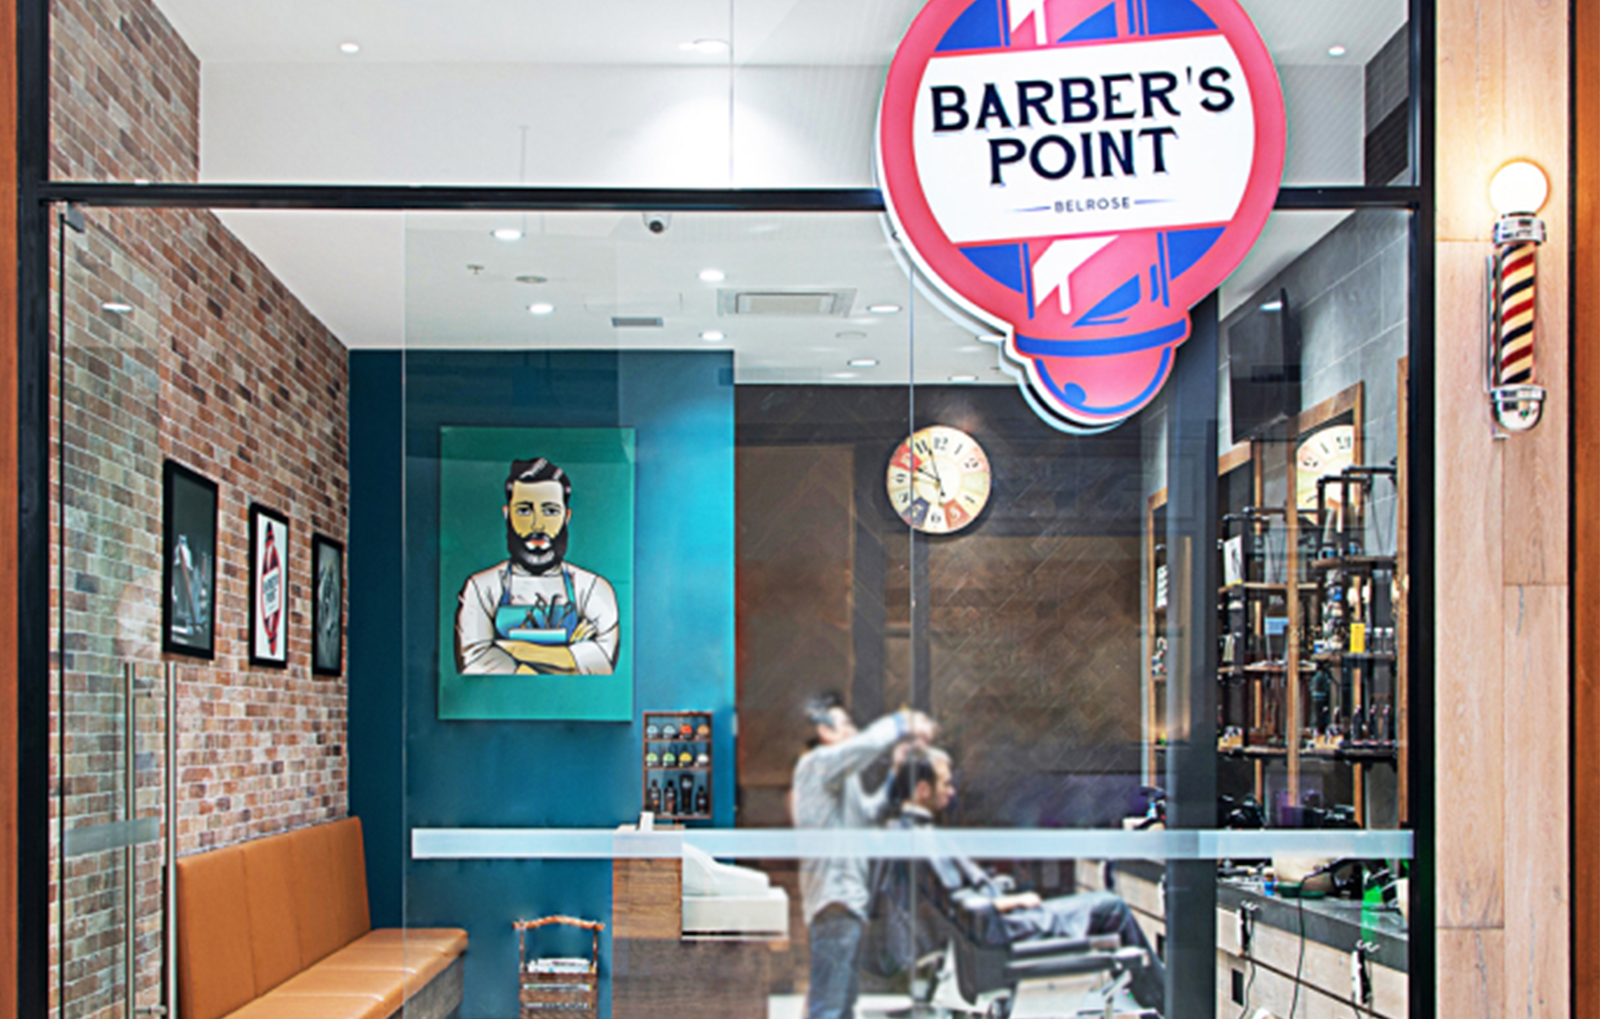 BARBERS POINT | Glen St Belrose, NSW 2085